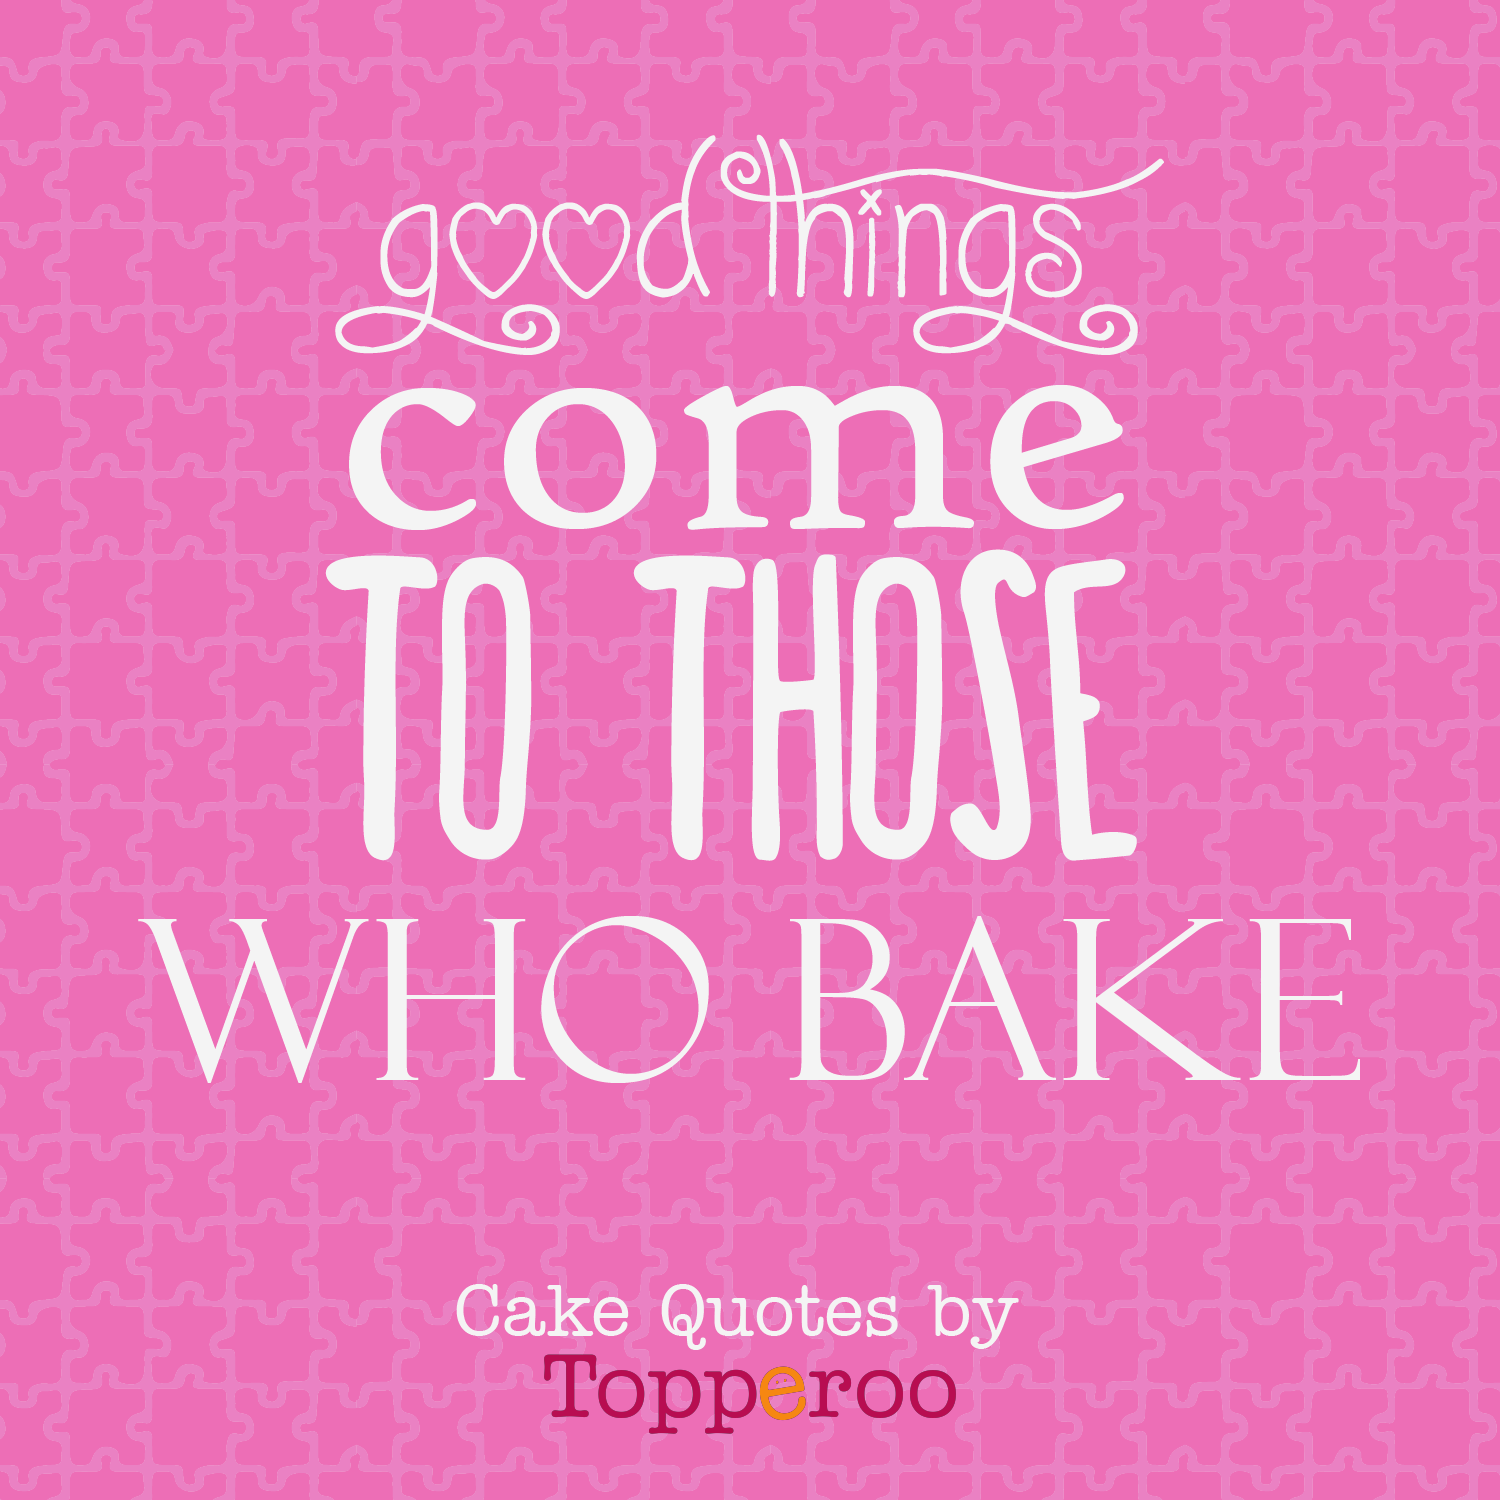 Cake Pic With Quotes : Cake Quotes - Topperoo Blog